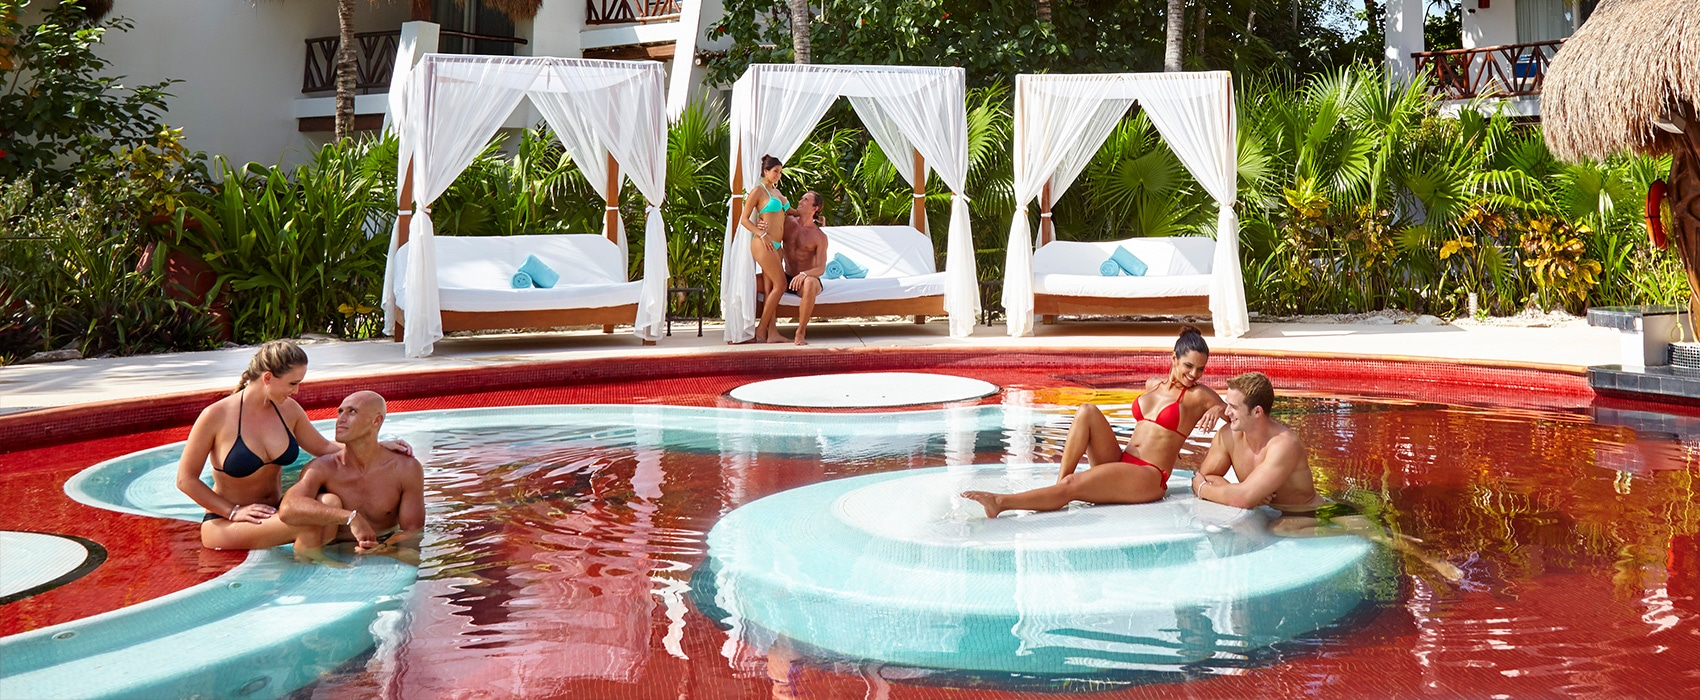 Desire Riviera Maya Pearl Resort | Riviera Maya all Inclusive